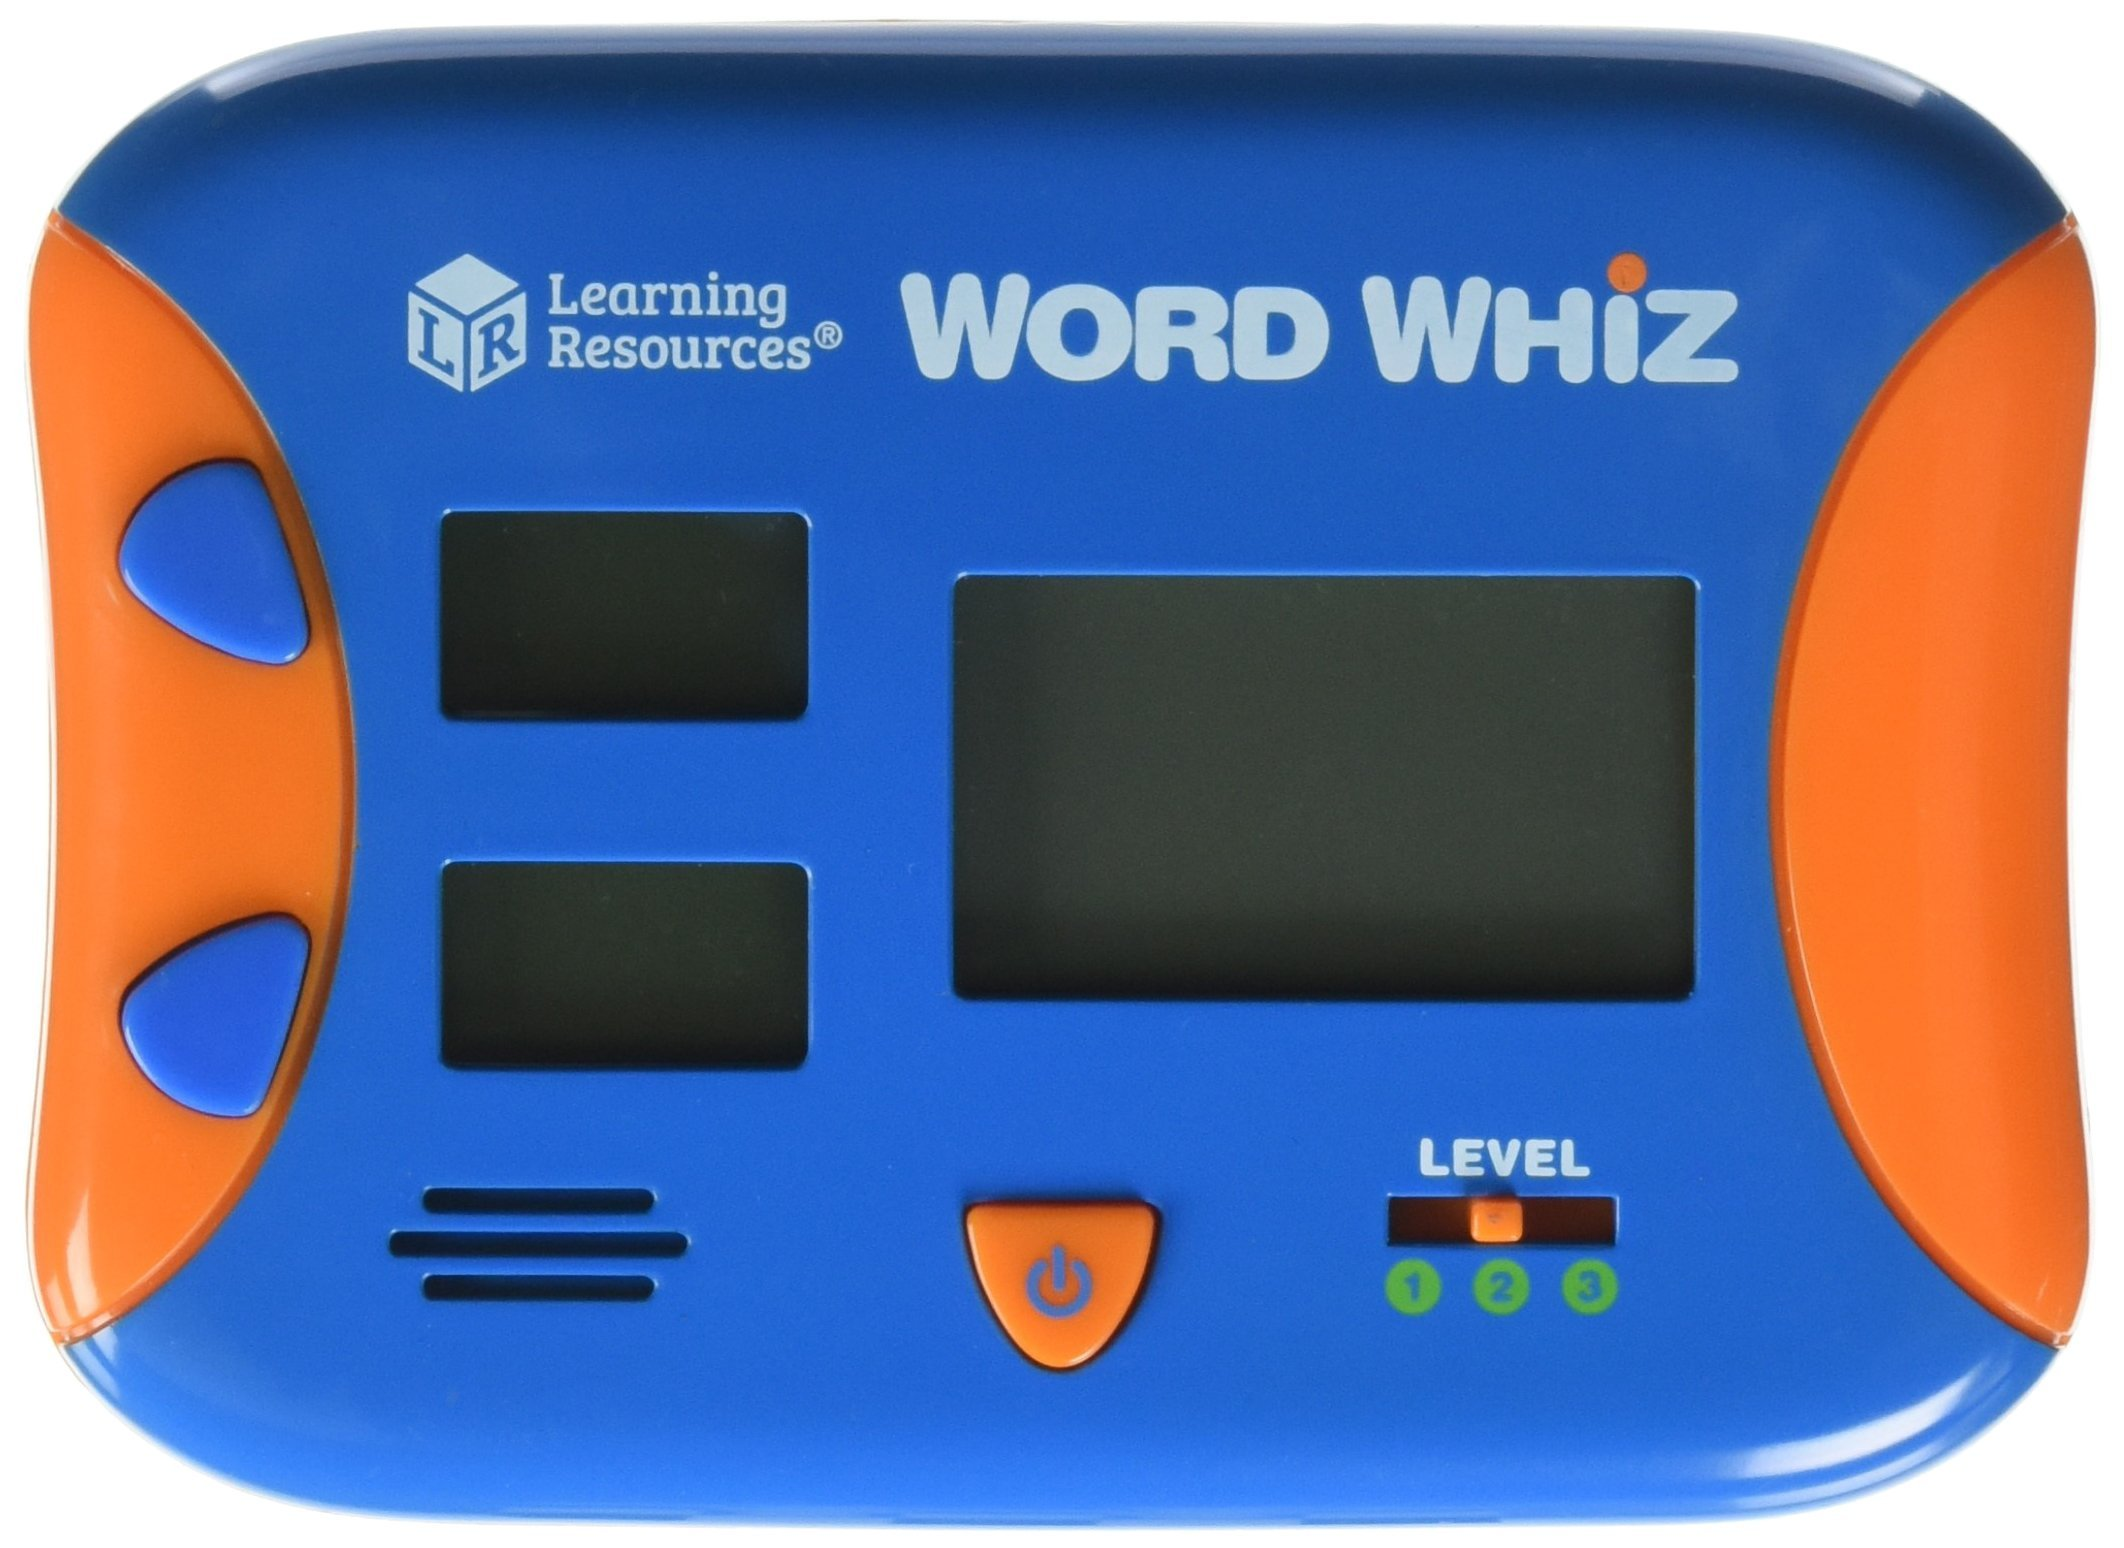 Learning Resources Word Whiz Electronic Flash Card by TekToys